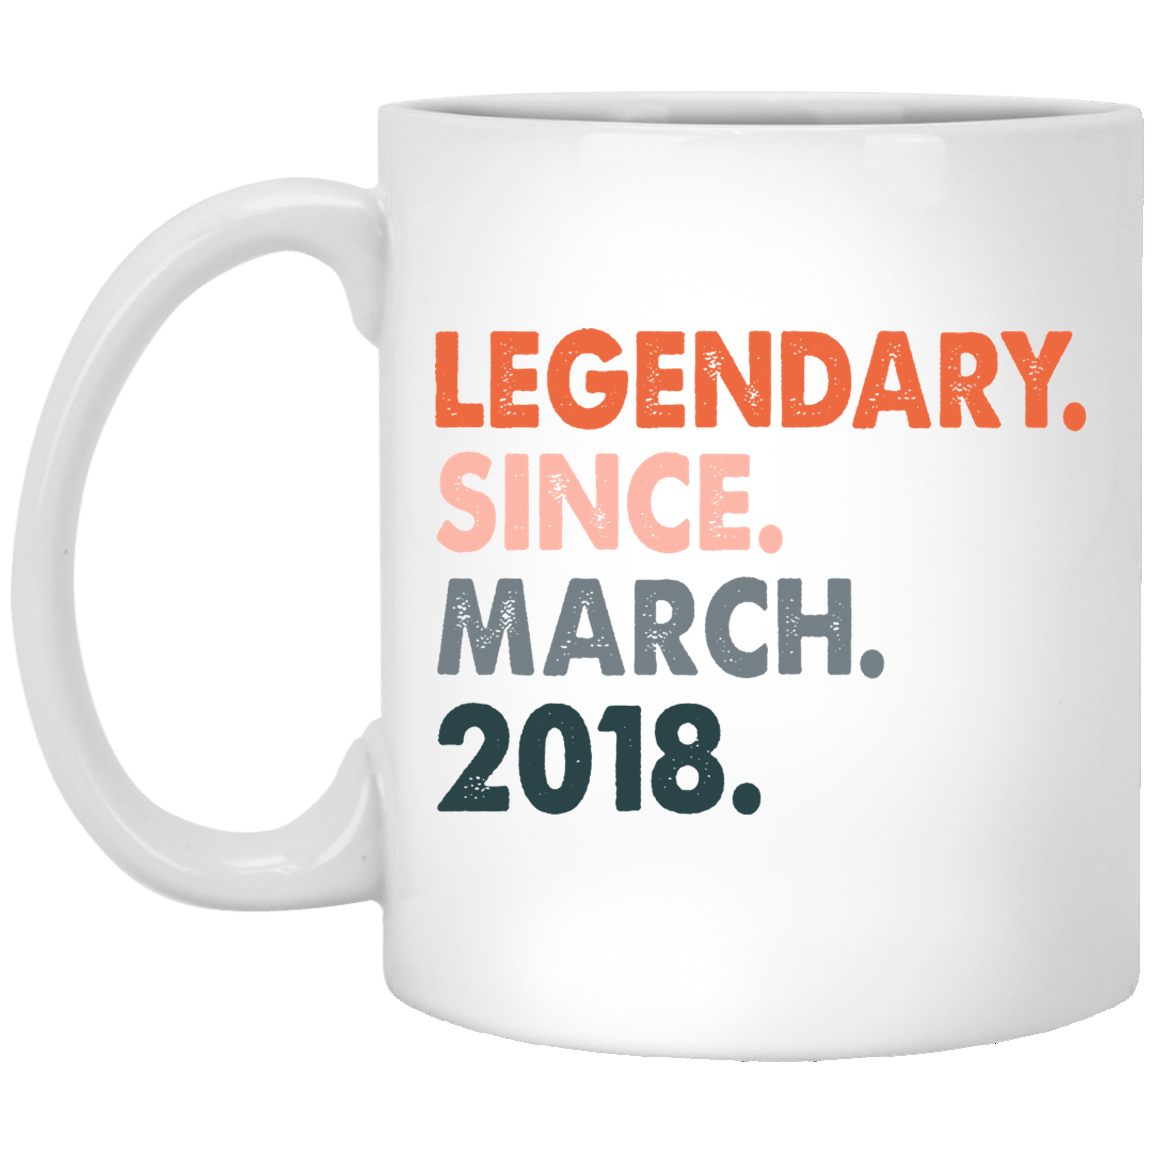 3rd-Birthday-Ideas-for-Women-and-Men-Legendary-Since-March-2018 Funny Quotes Coffee Mug 99promocode